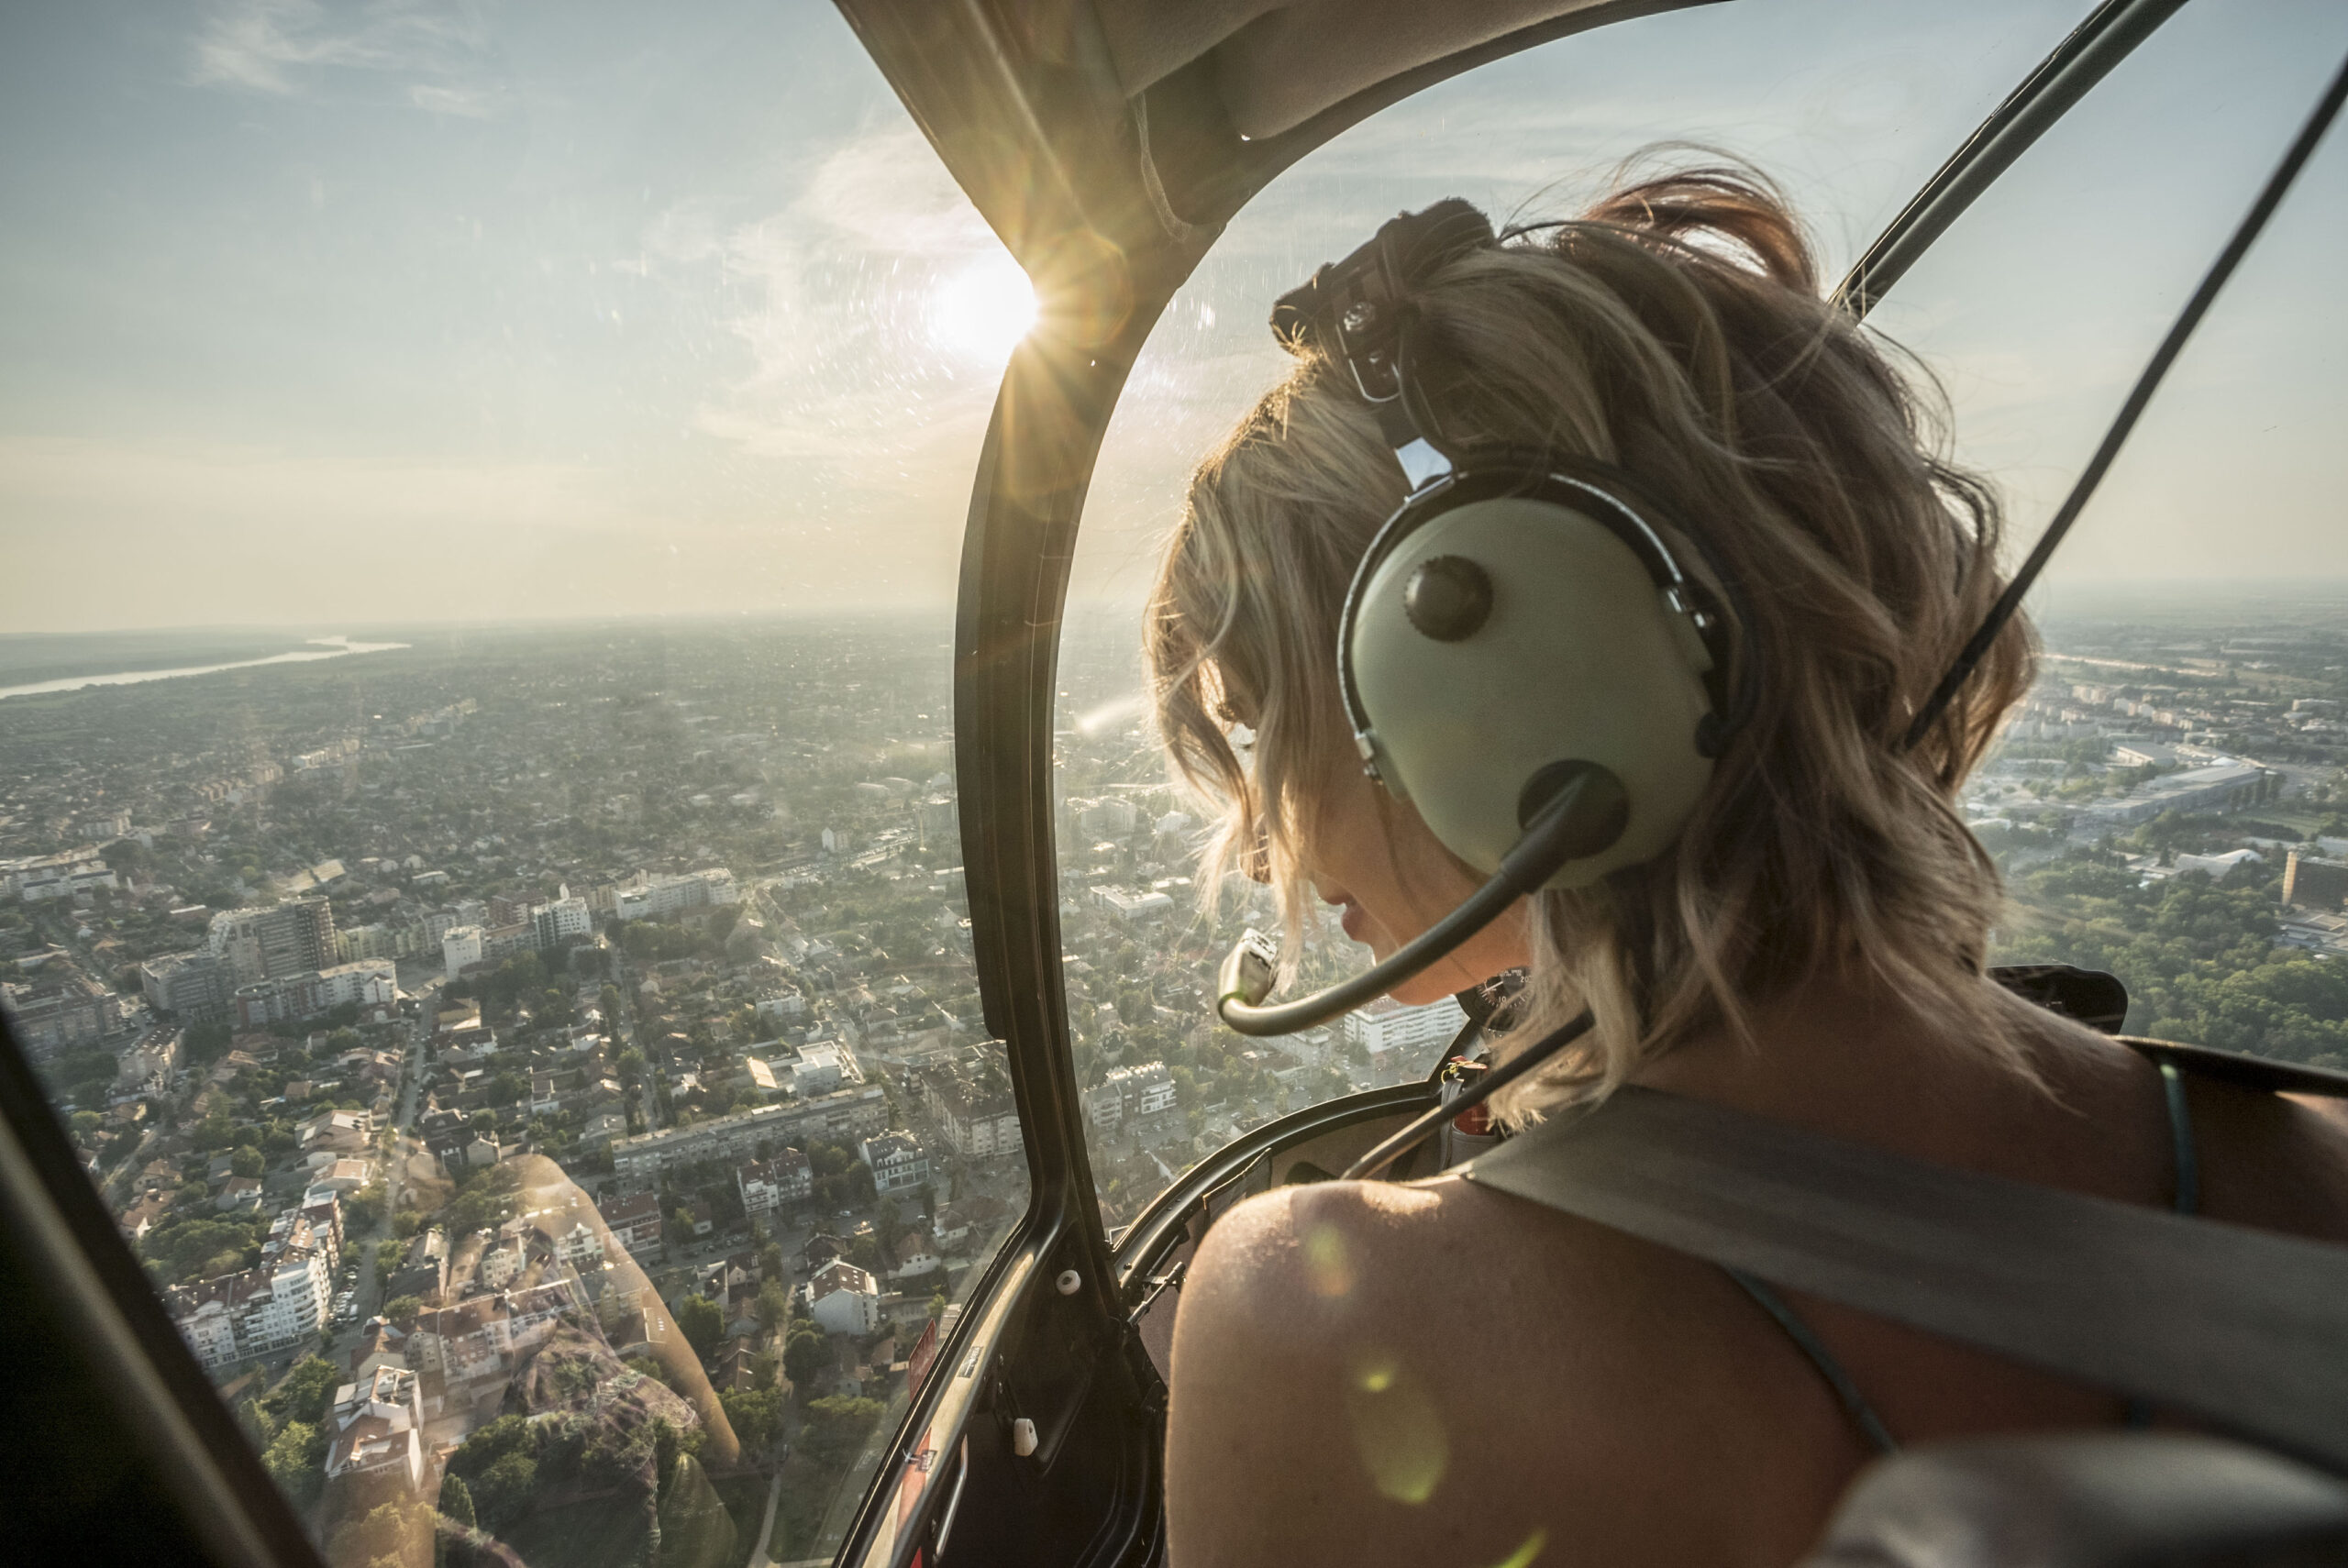 Portrait of beautiful blonde women enjoying helicopter flight. She is amazed by cityscape and wearing pilot headphones.